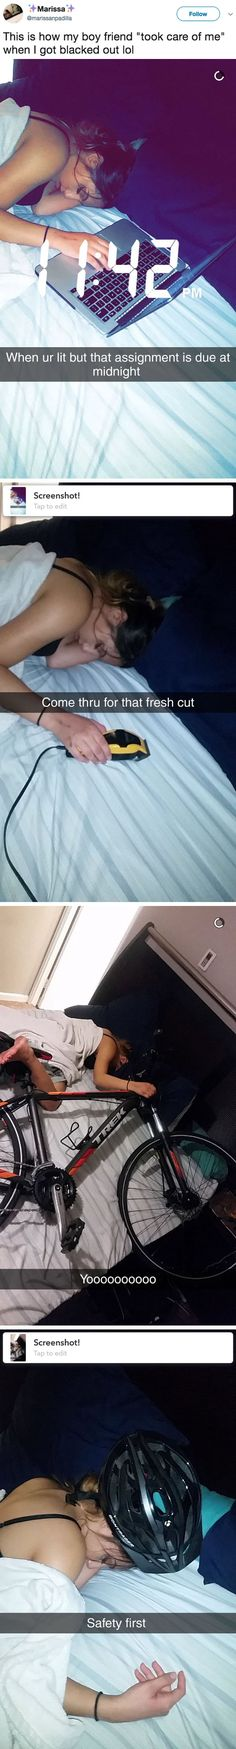 Boyfriend pranks girlfriend while she's passed out. Then she saw the pictures.